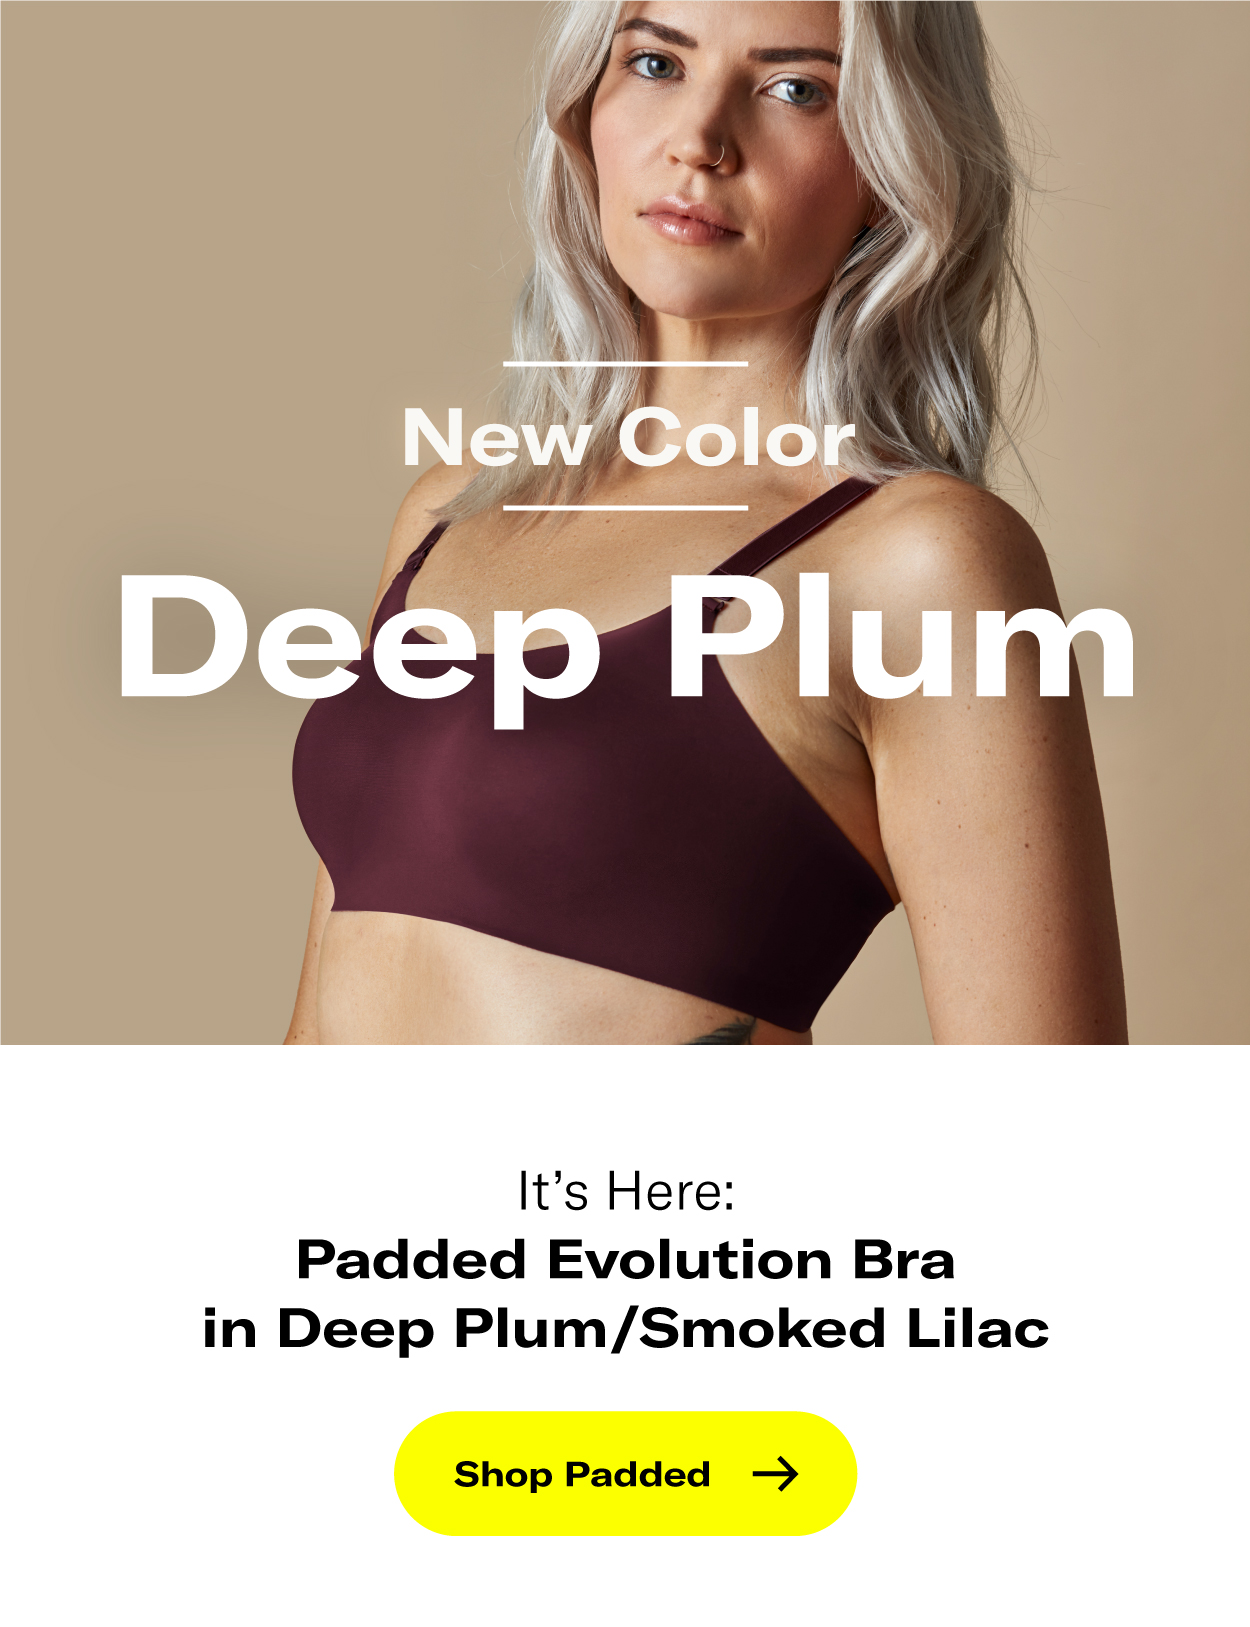 New Deep Plum Subhead: It's Here: Padded Evolution Bra in Deep Plum/Smoked Lilac